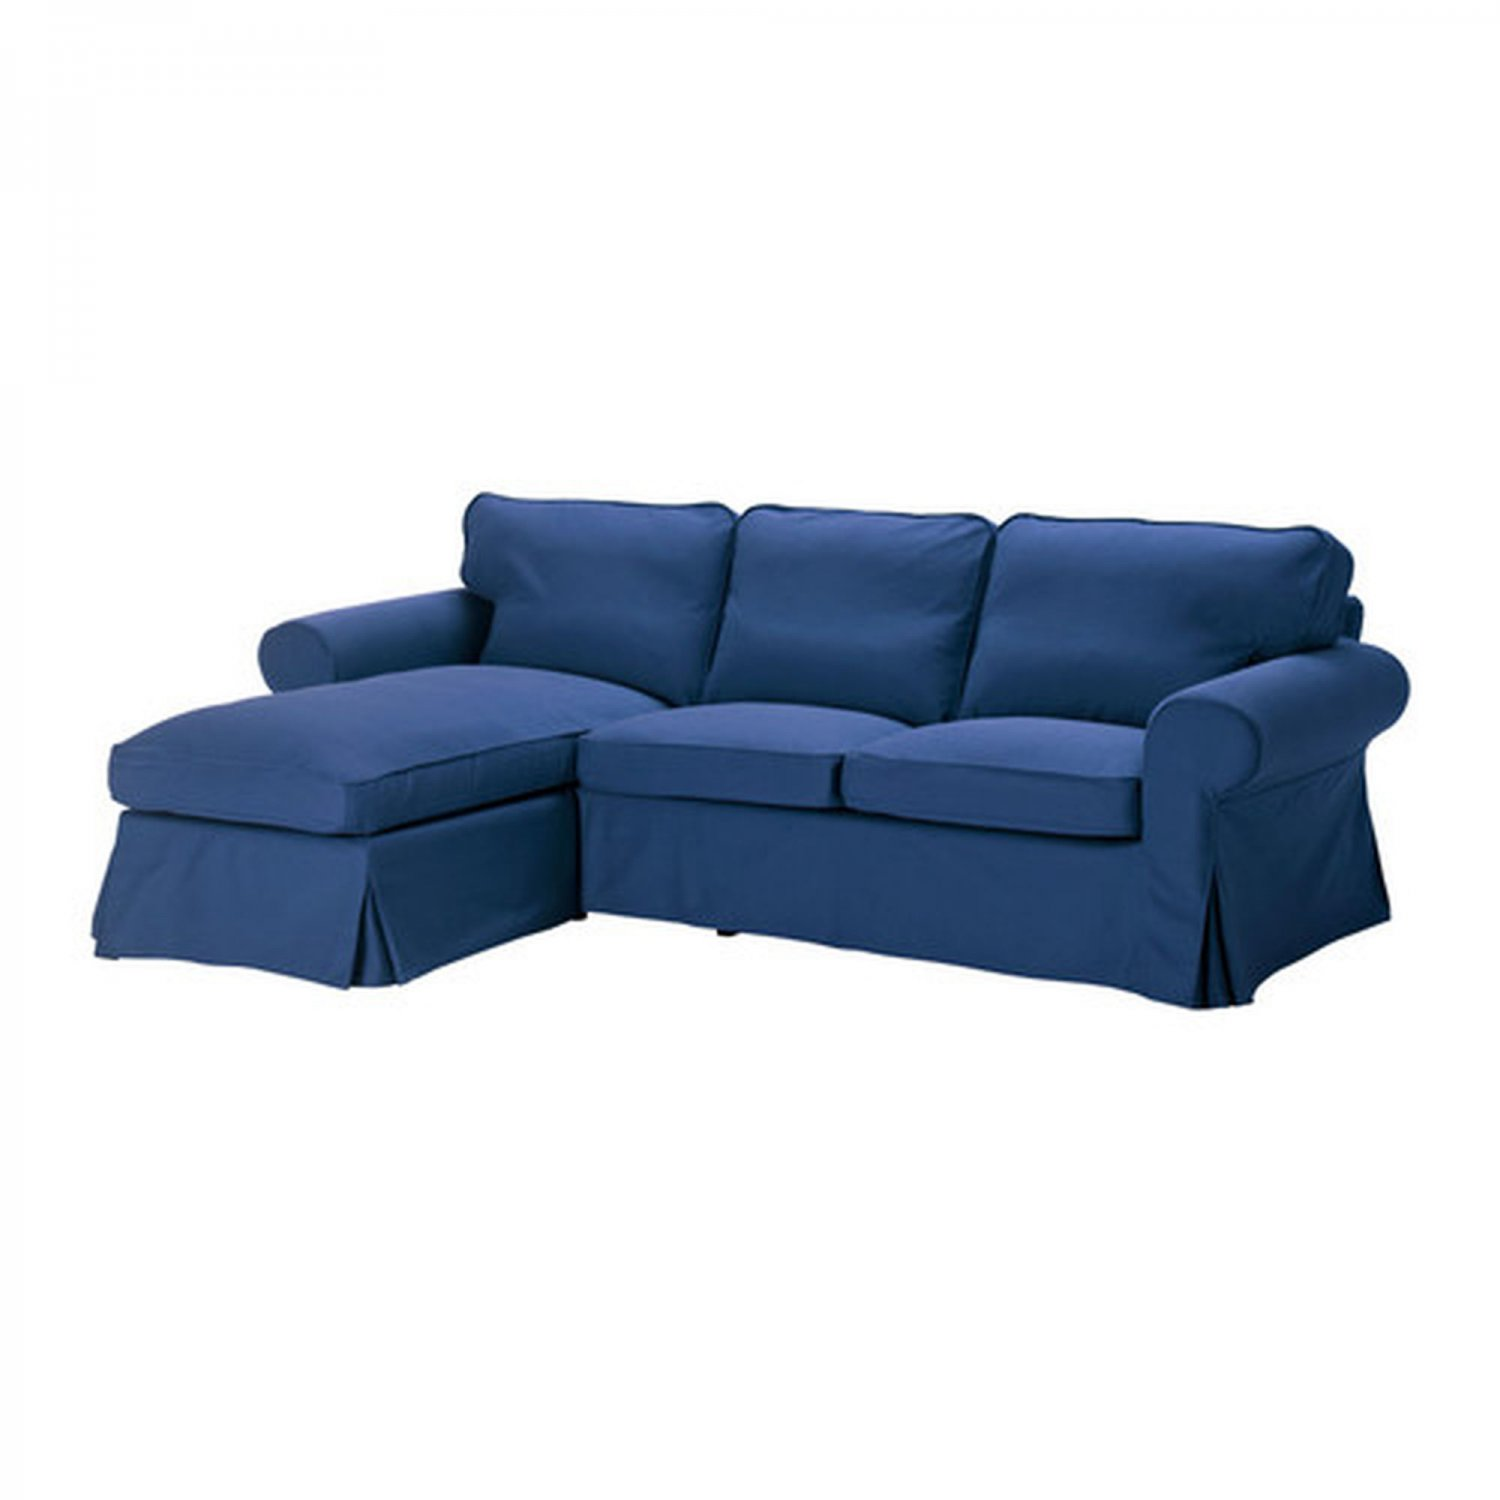 Ikea ektorp loveseat with chaise lounge cover slipcover for Chaise longue sofa